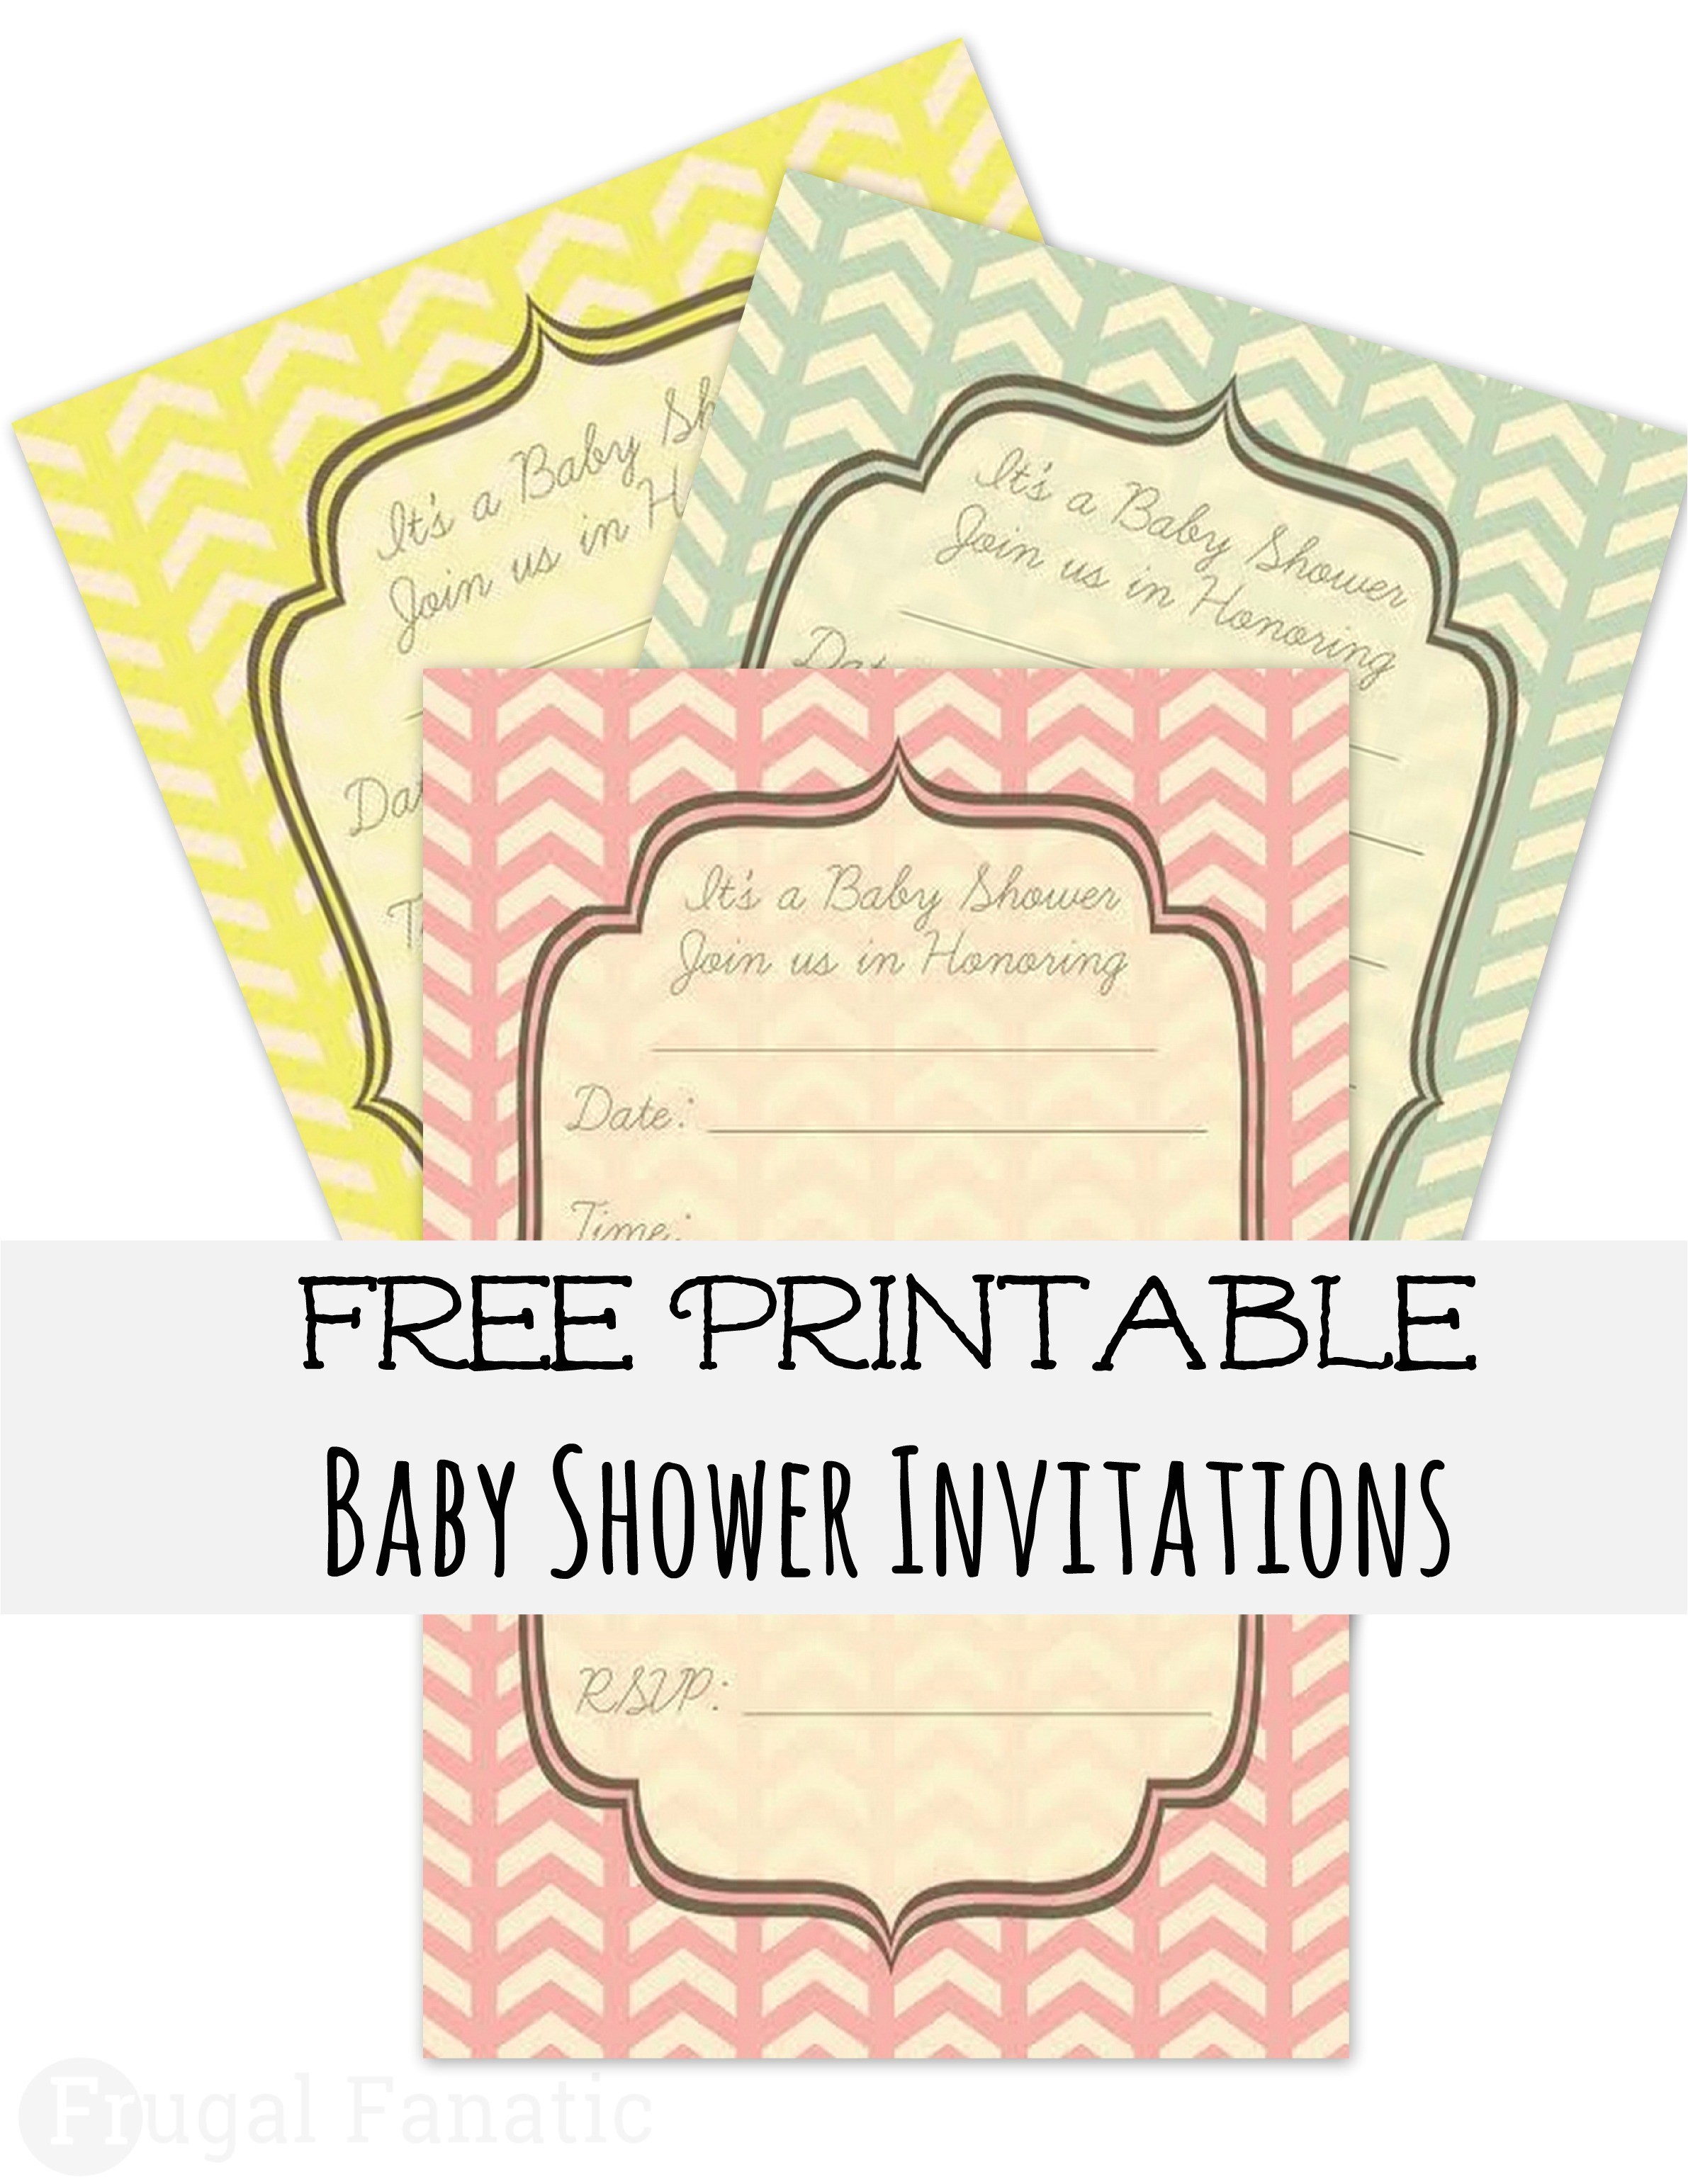 Customize Your Own Baby Shower Invitations Free Baby Shower Invitations Create Your Own Free